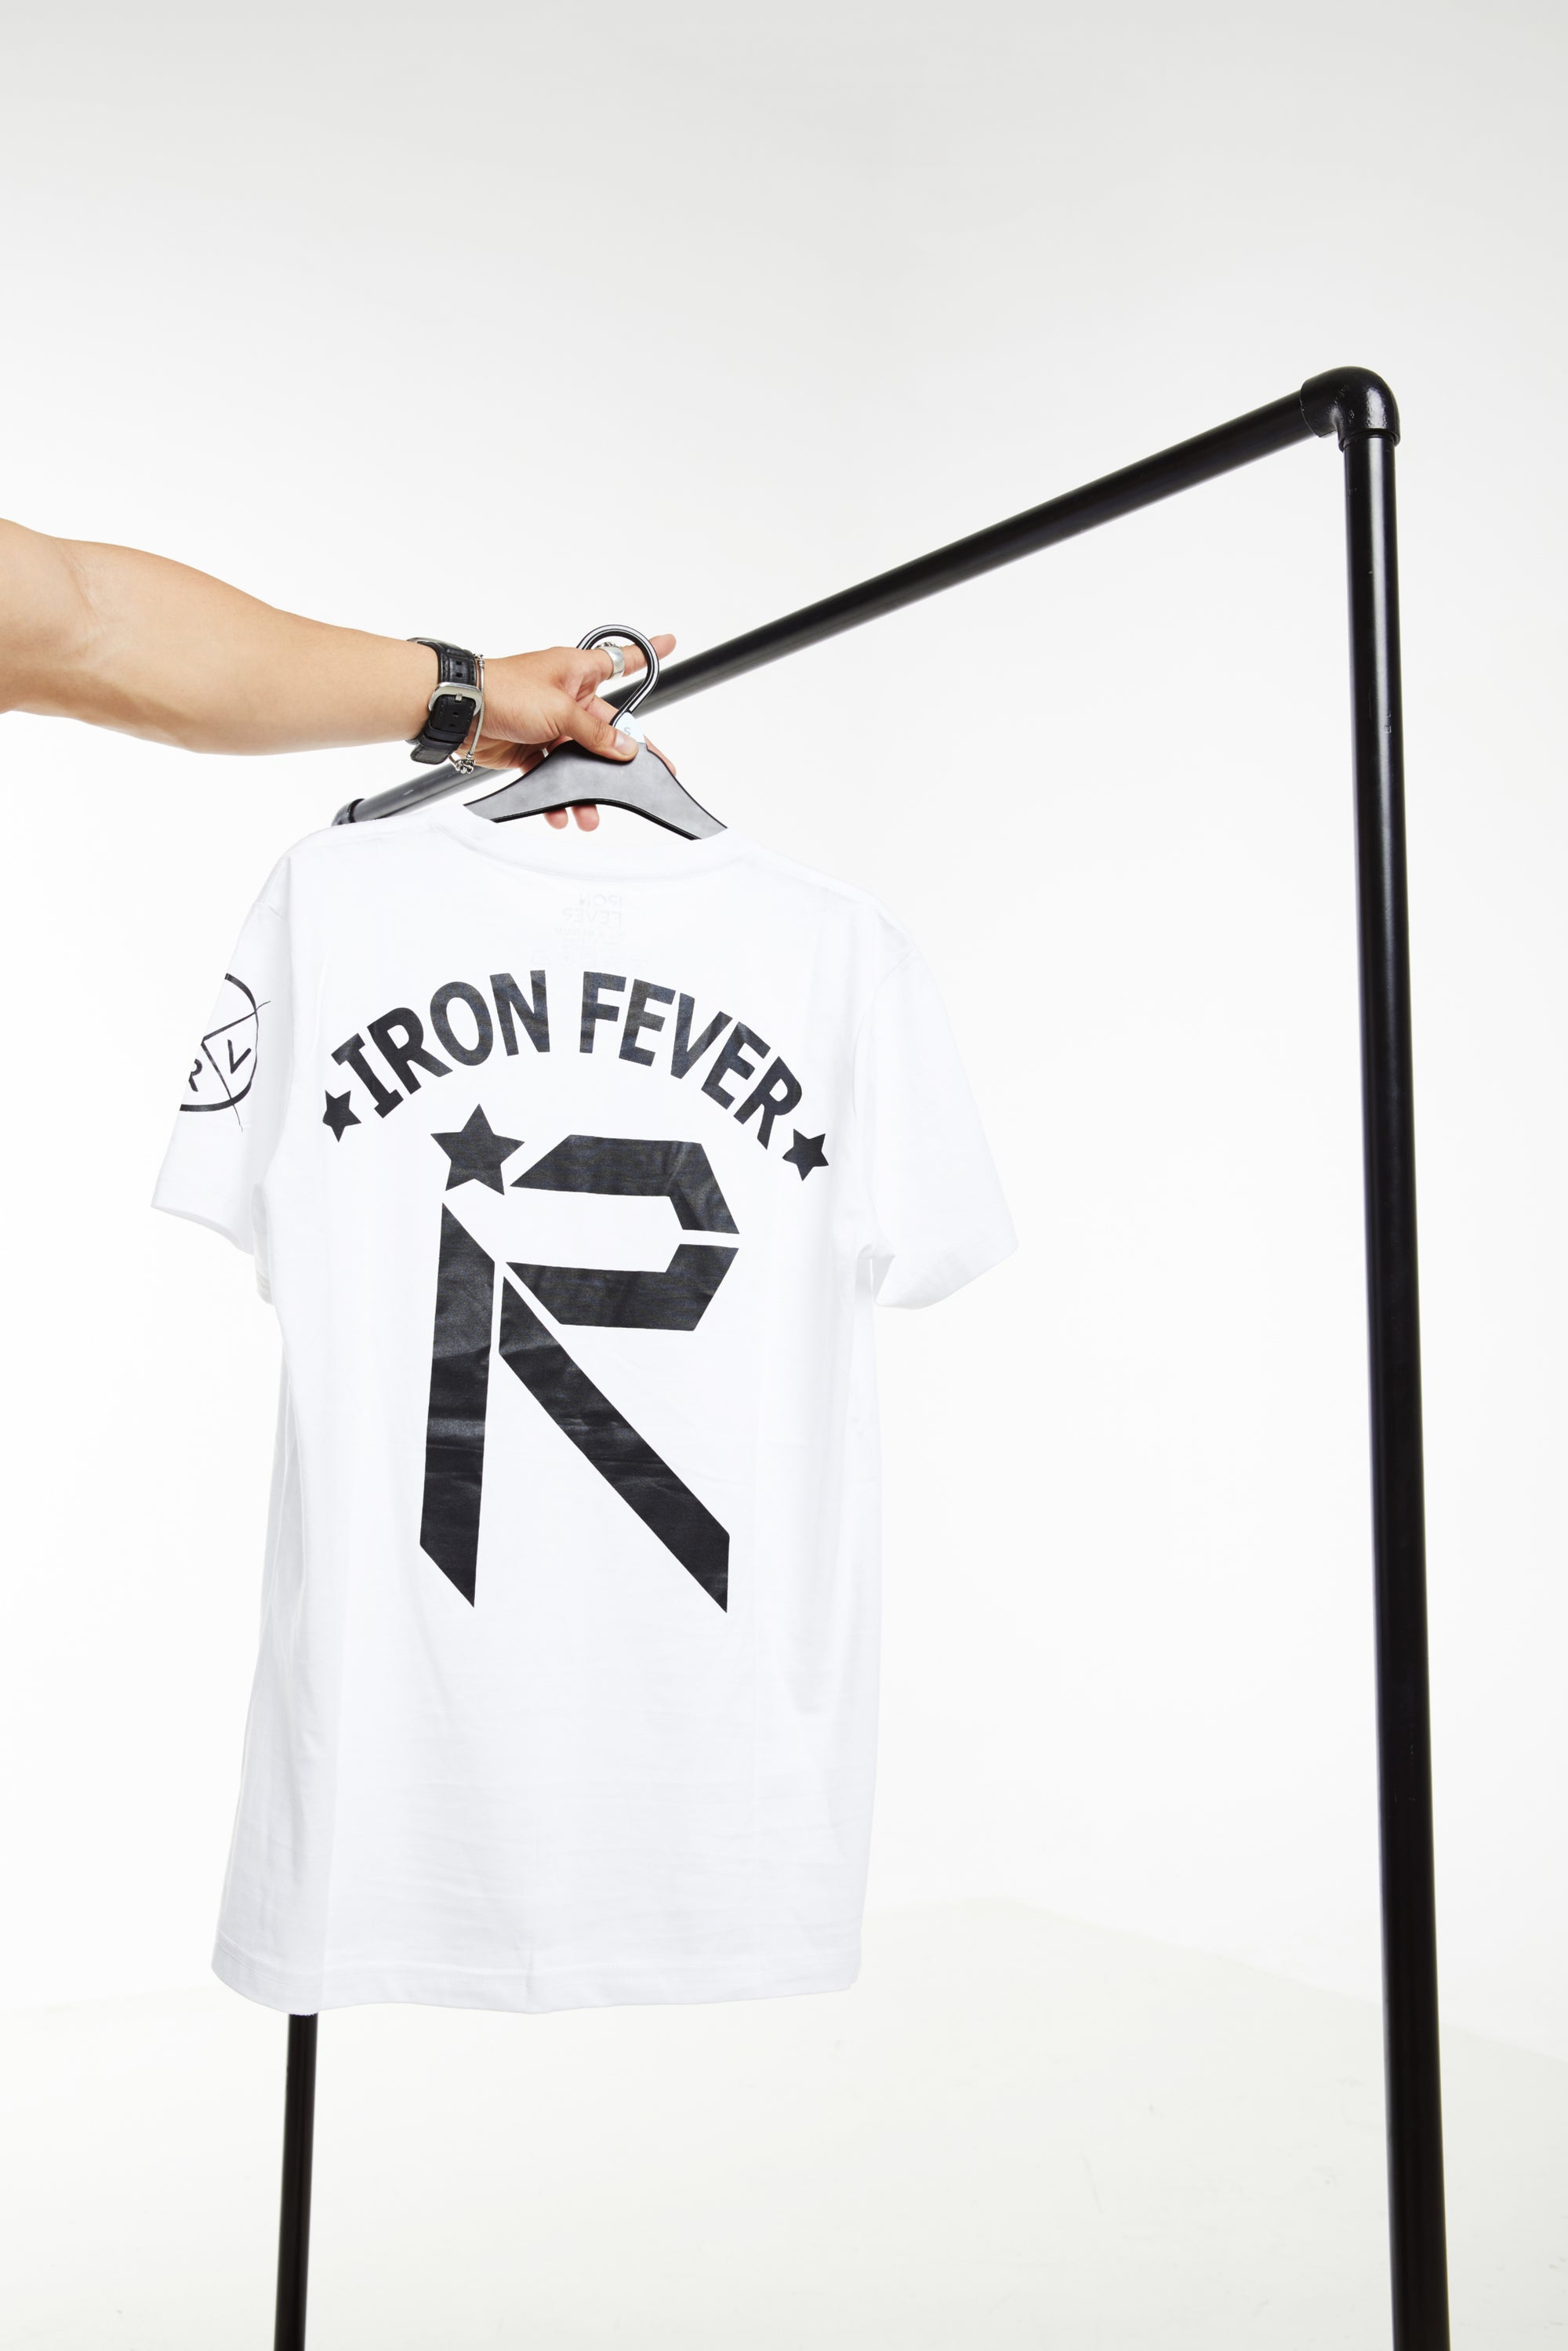 IRONFEVER Revolution - White / Black